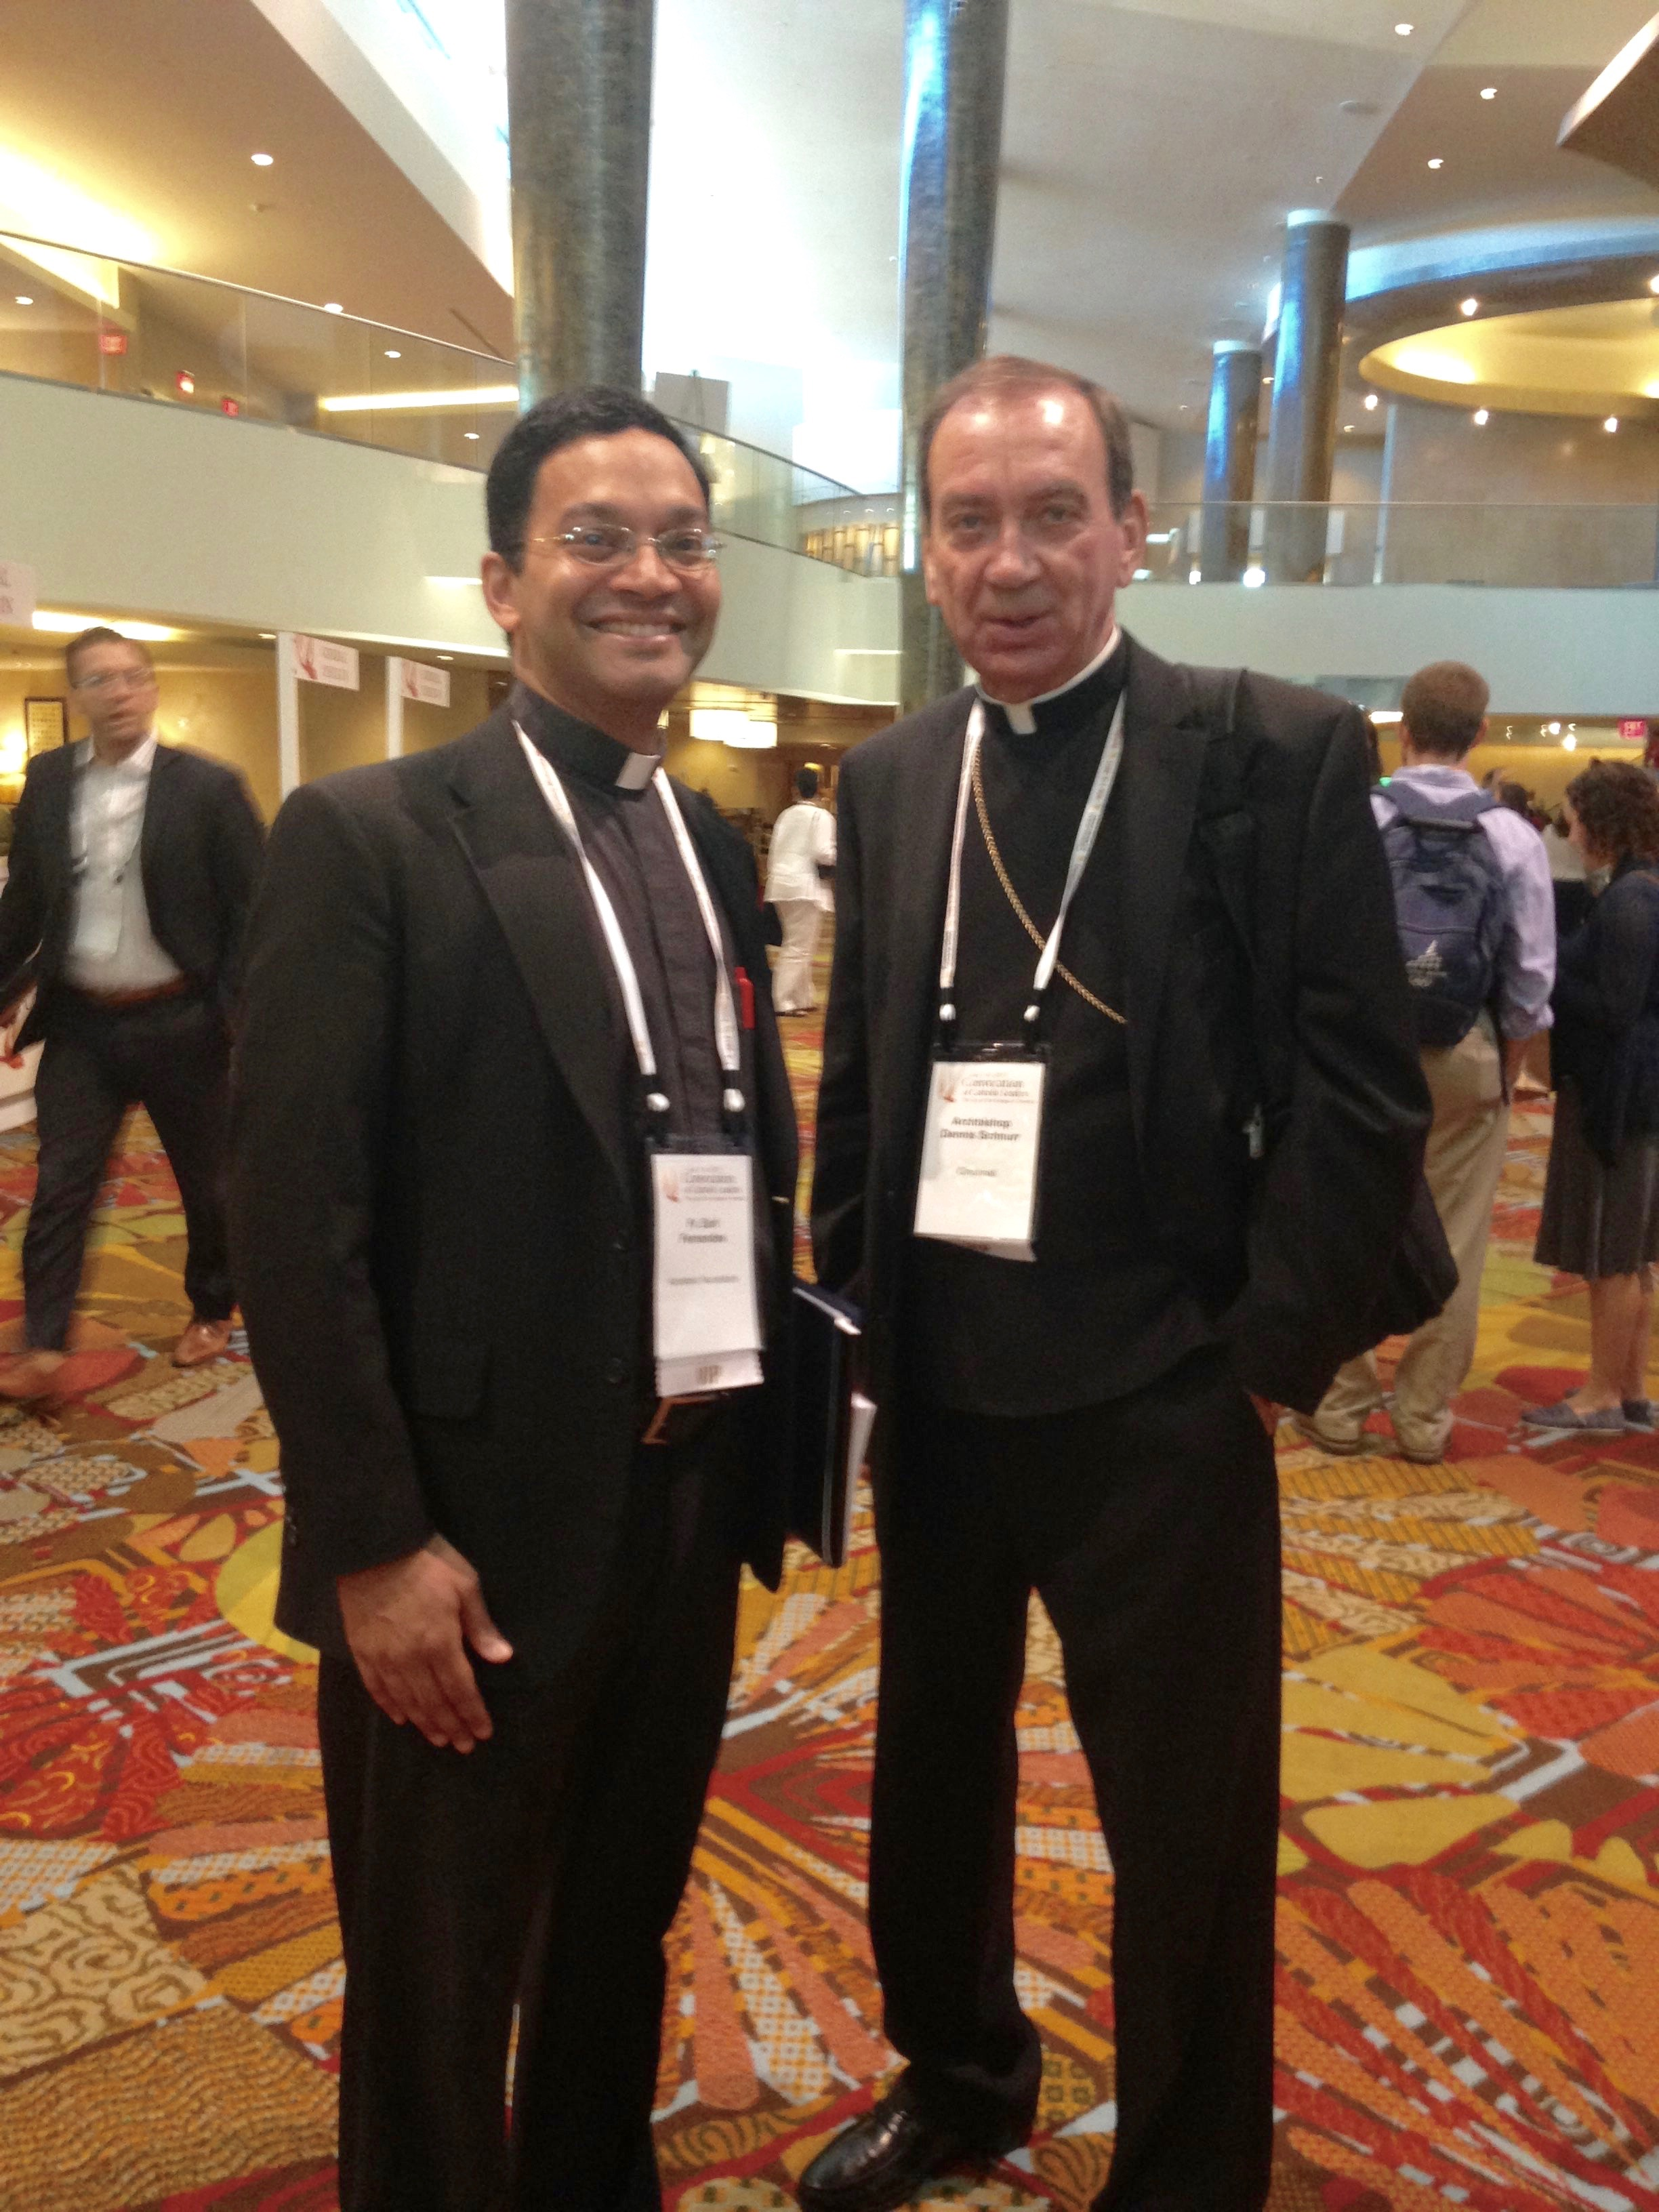 Father Earl Fernandes, former head of Mount St. Mary's Seminary of the West and now a secretary for the papal nuncio, Archibishop Christophe Pierre, with Archbishop Dennis M. Schnurr (CT Photo/Gail Finke)